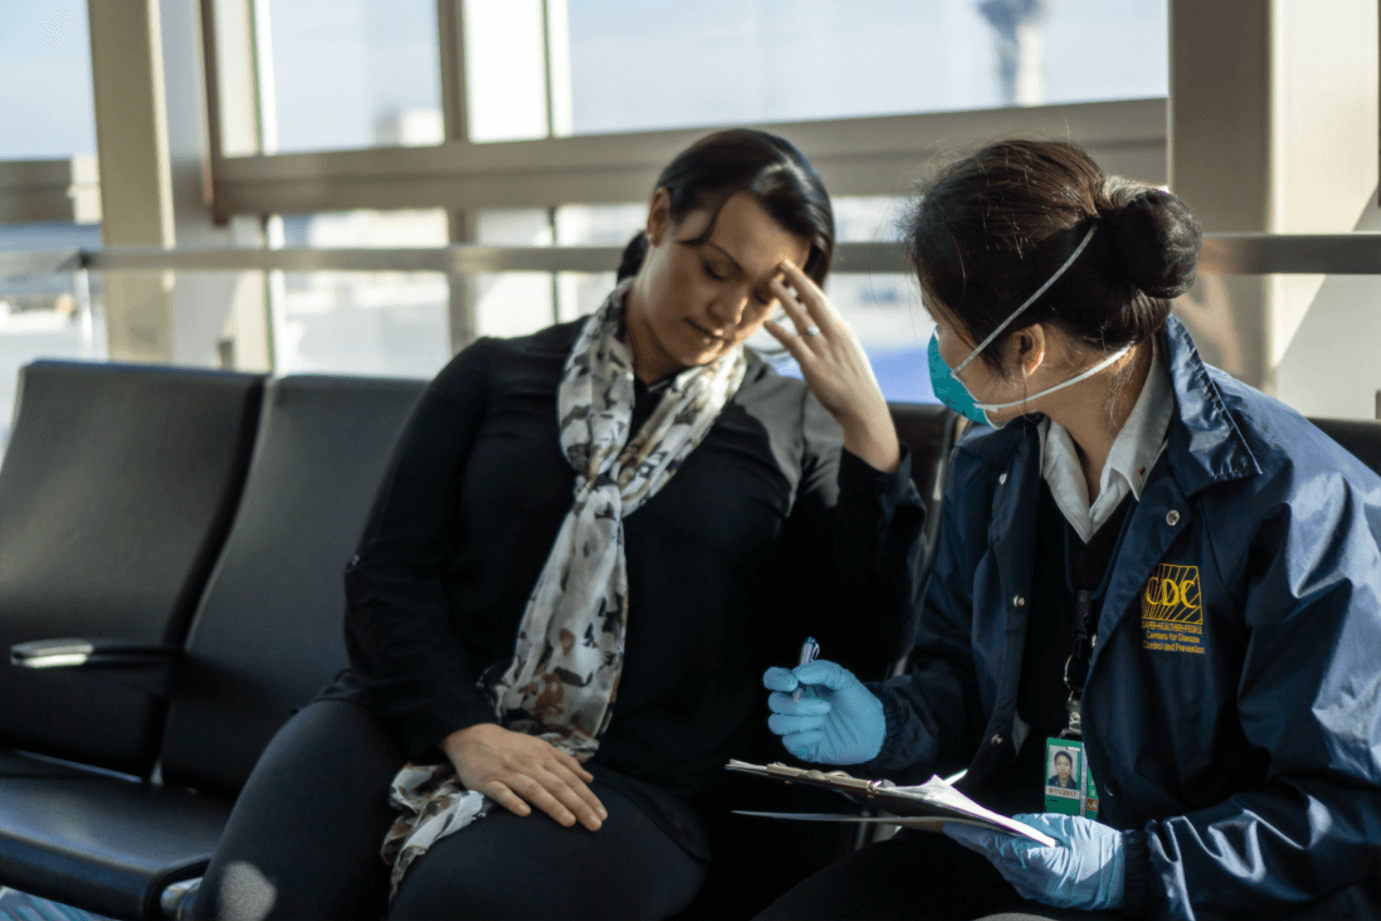 CDC worker interviewing person